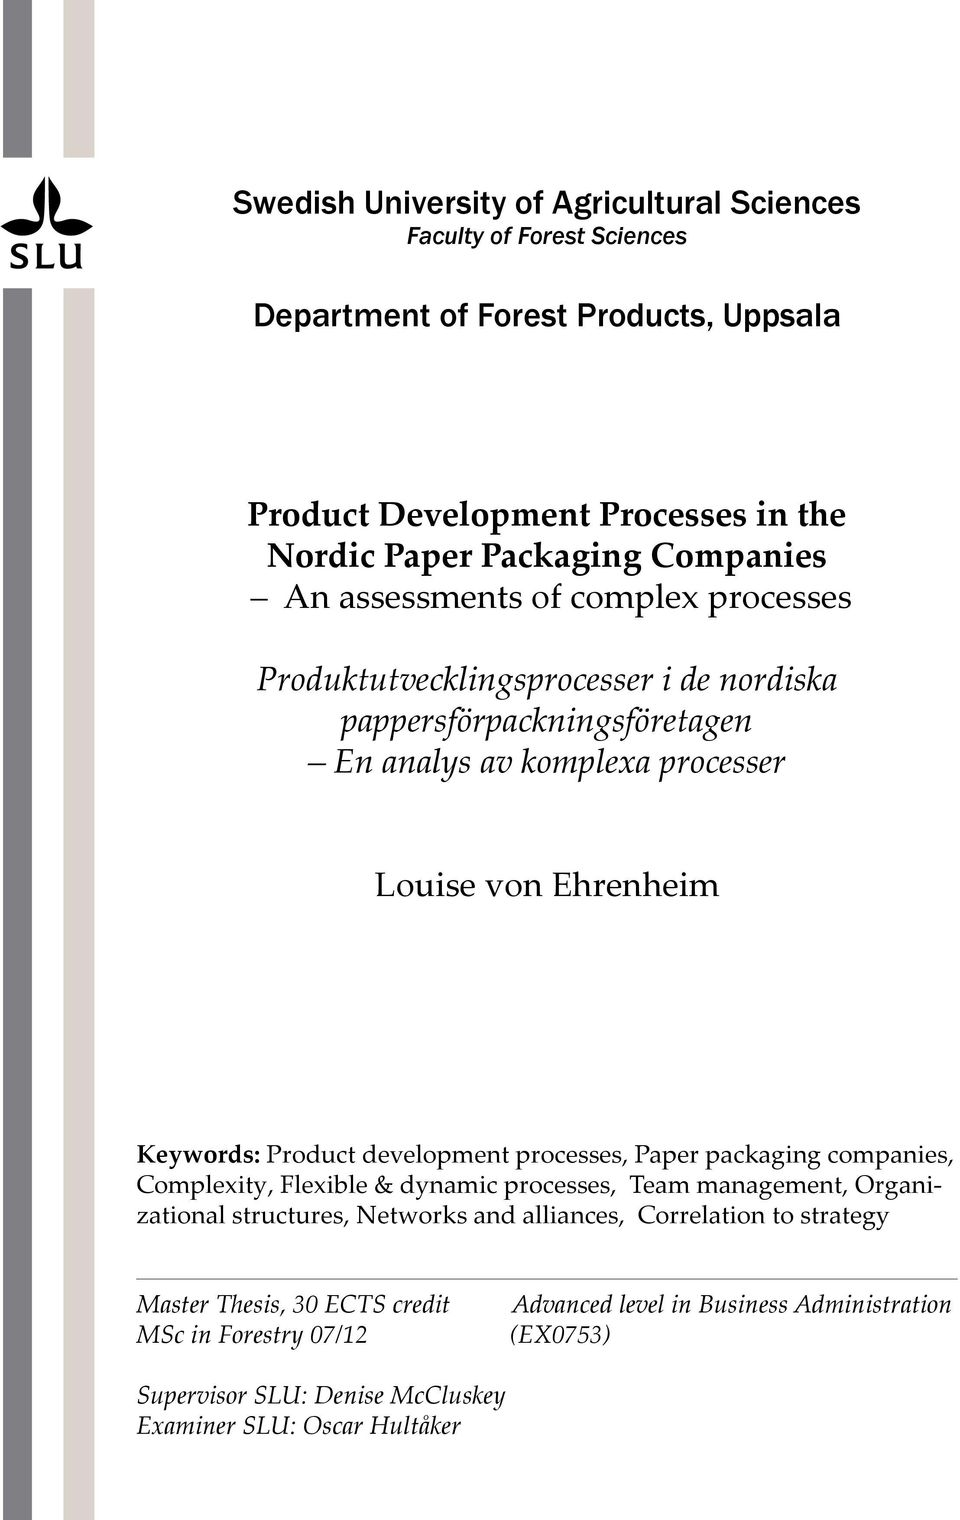 Keywords: Product development processes, Paper packaging companies, Complexity, Flexible & dynamic processes, Team management, Organizational structures, Networks and